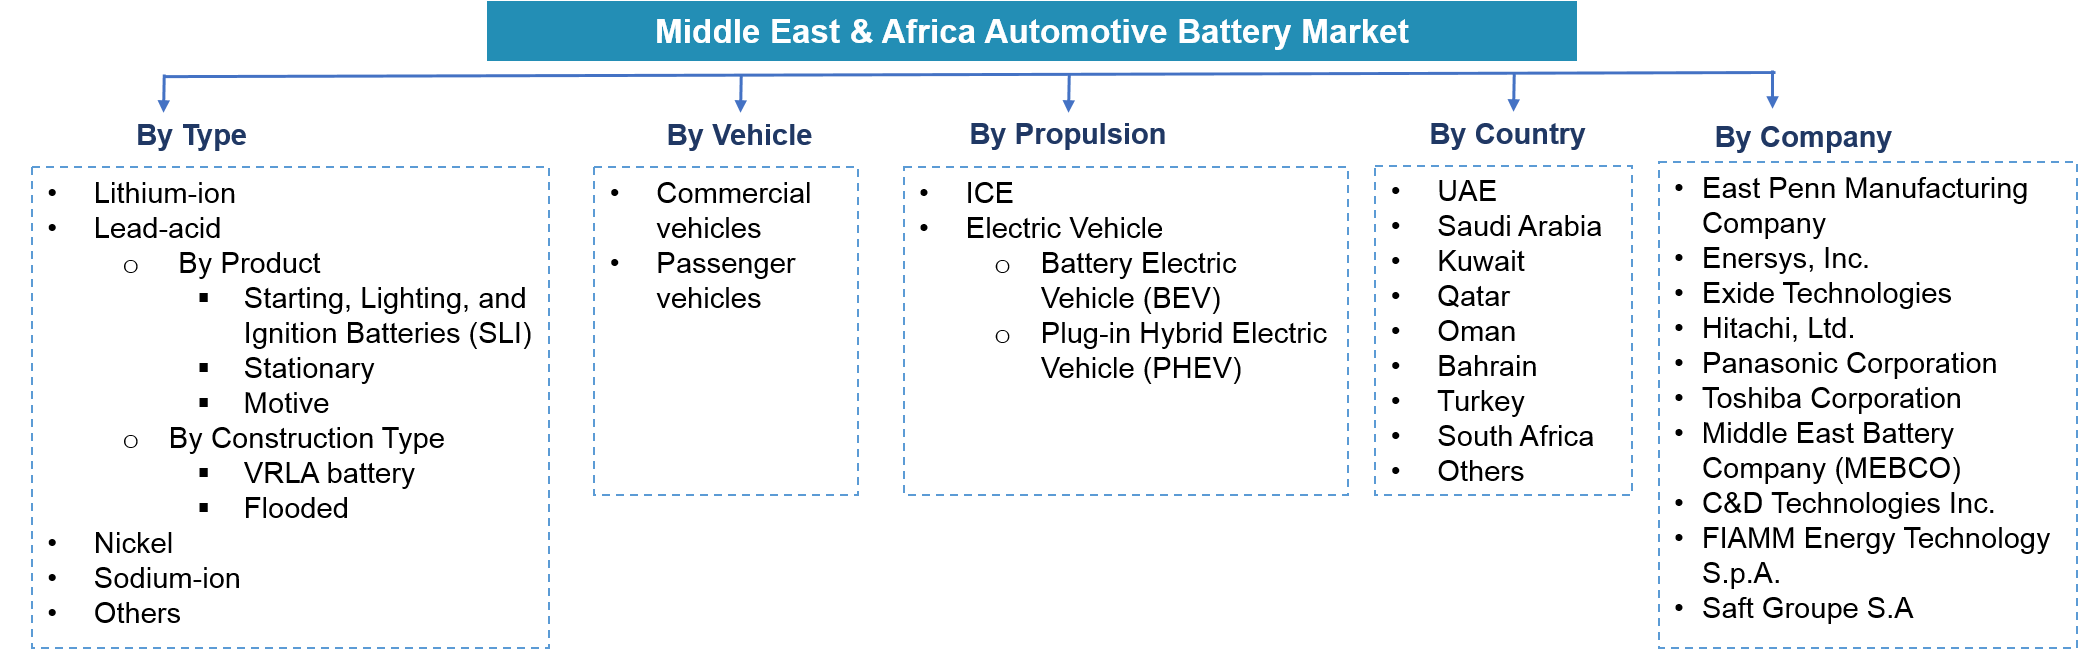 Middle East & Africa Automotive Battery Market Segmentation